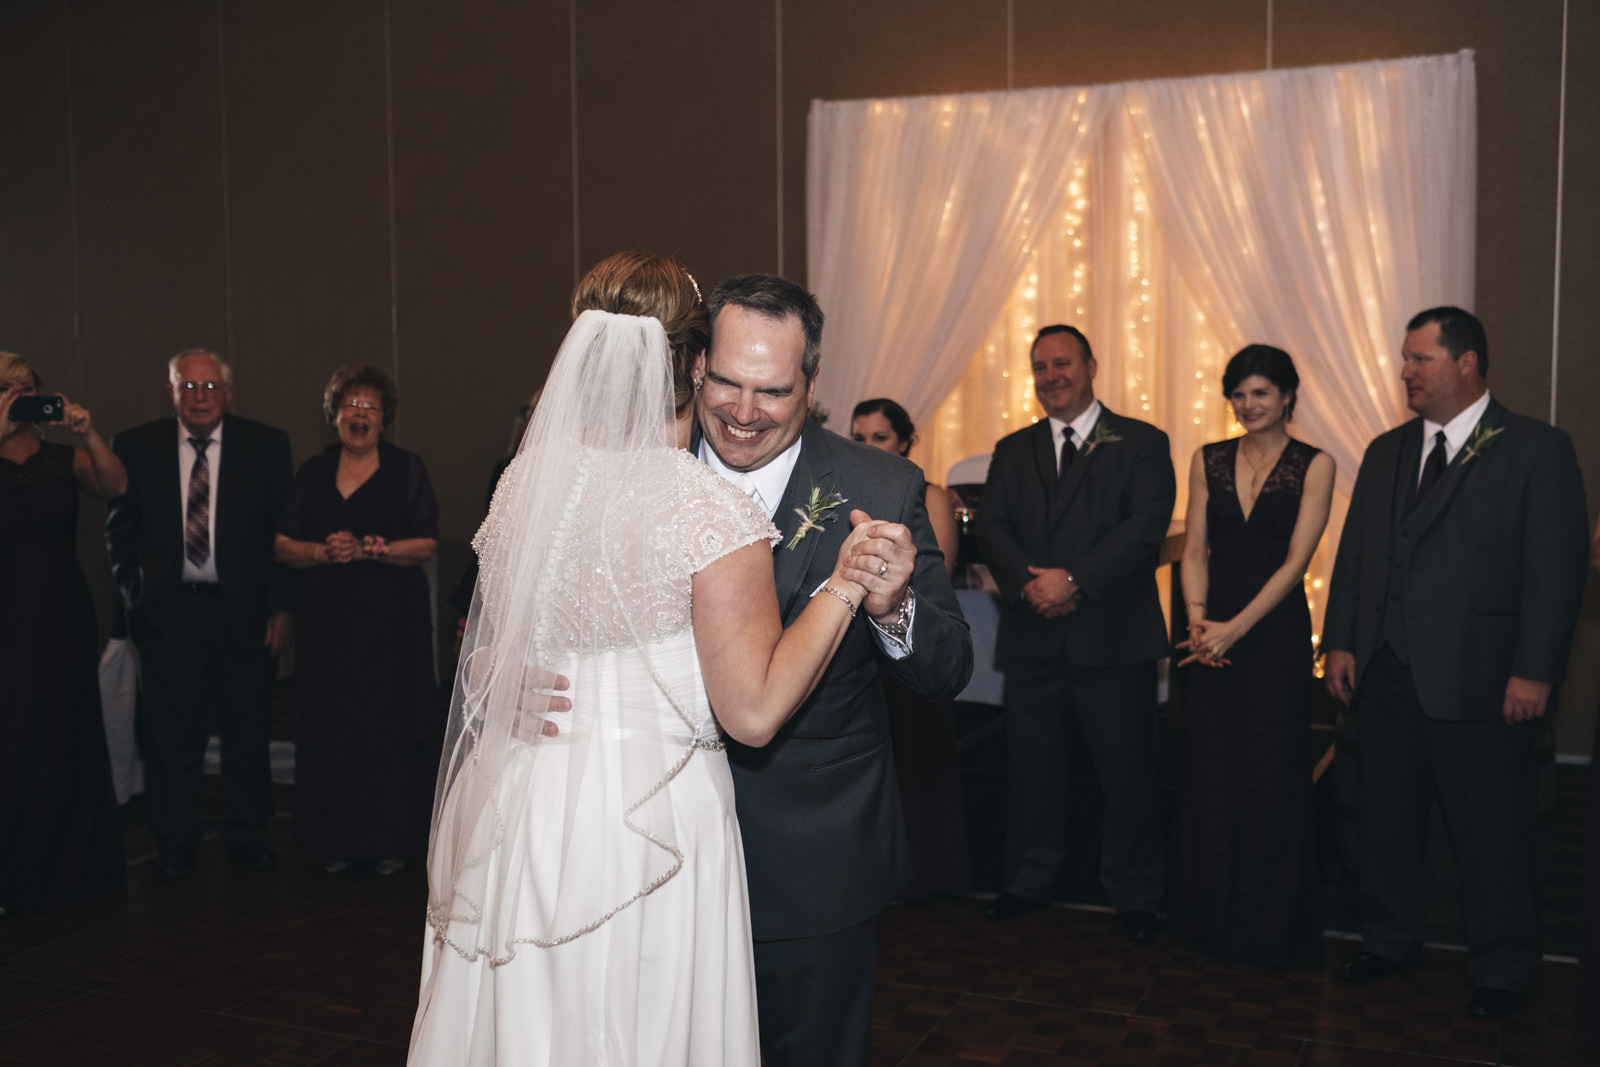 Bride and groom's first dance at Hilton Garden Inn at Levis Commons